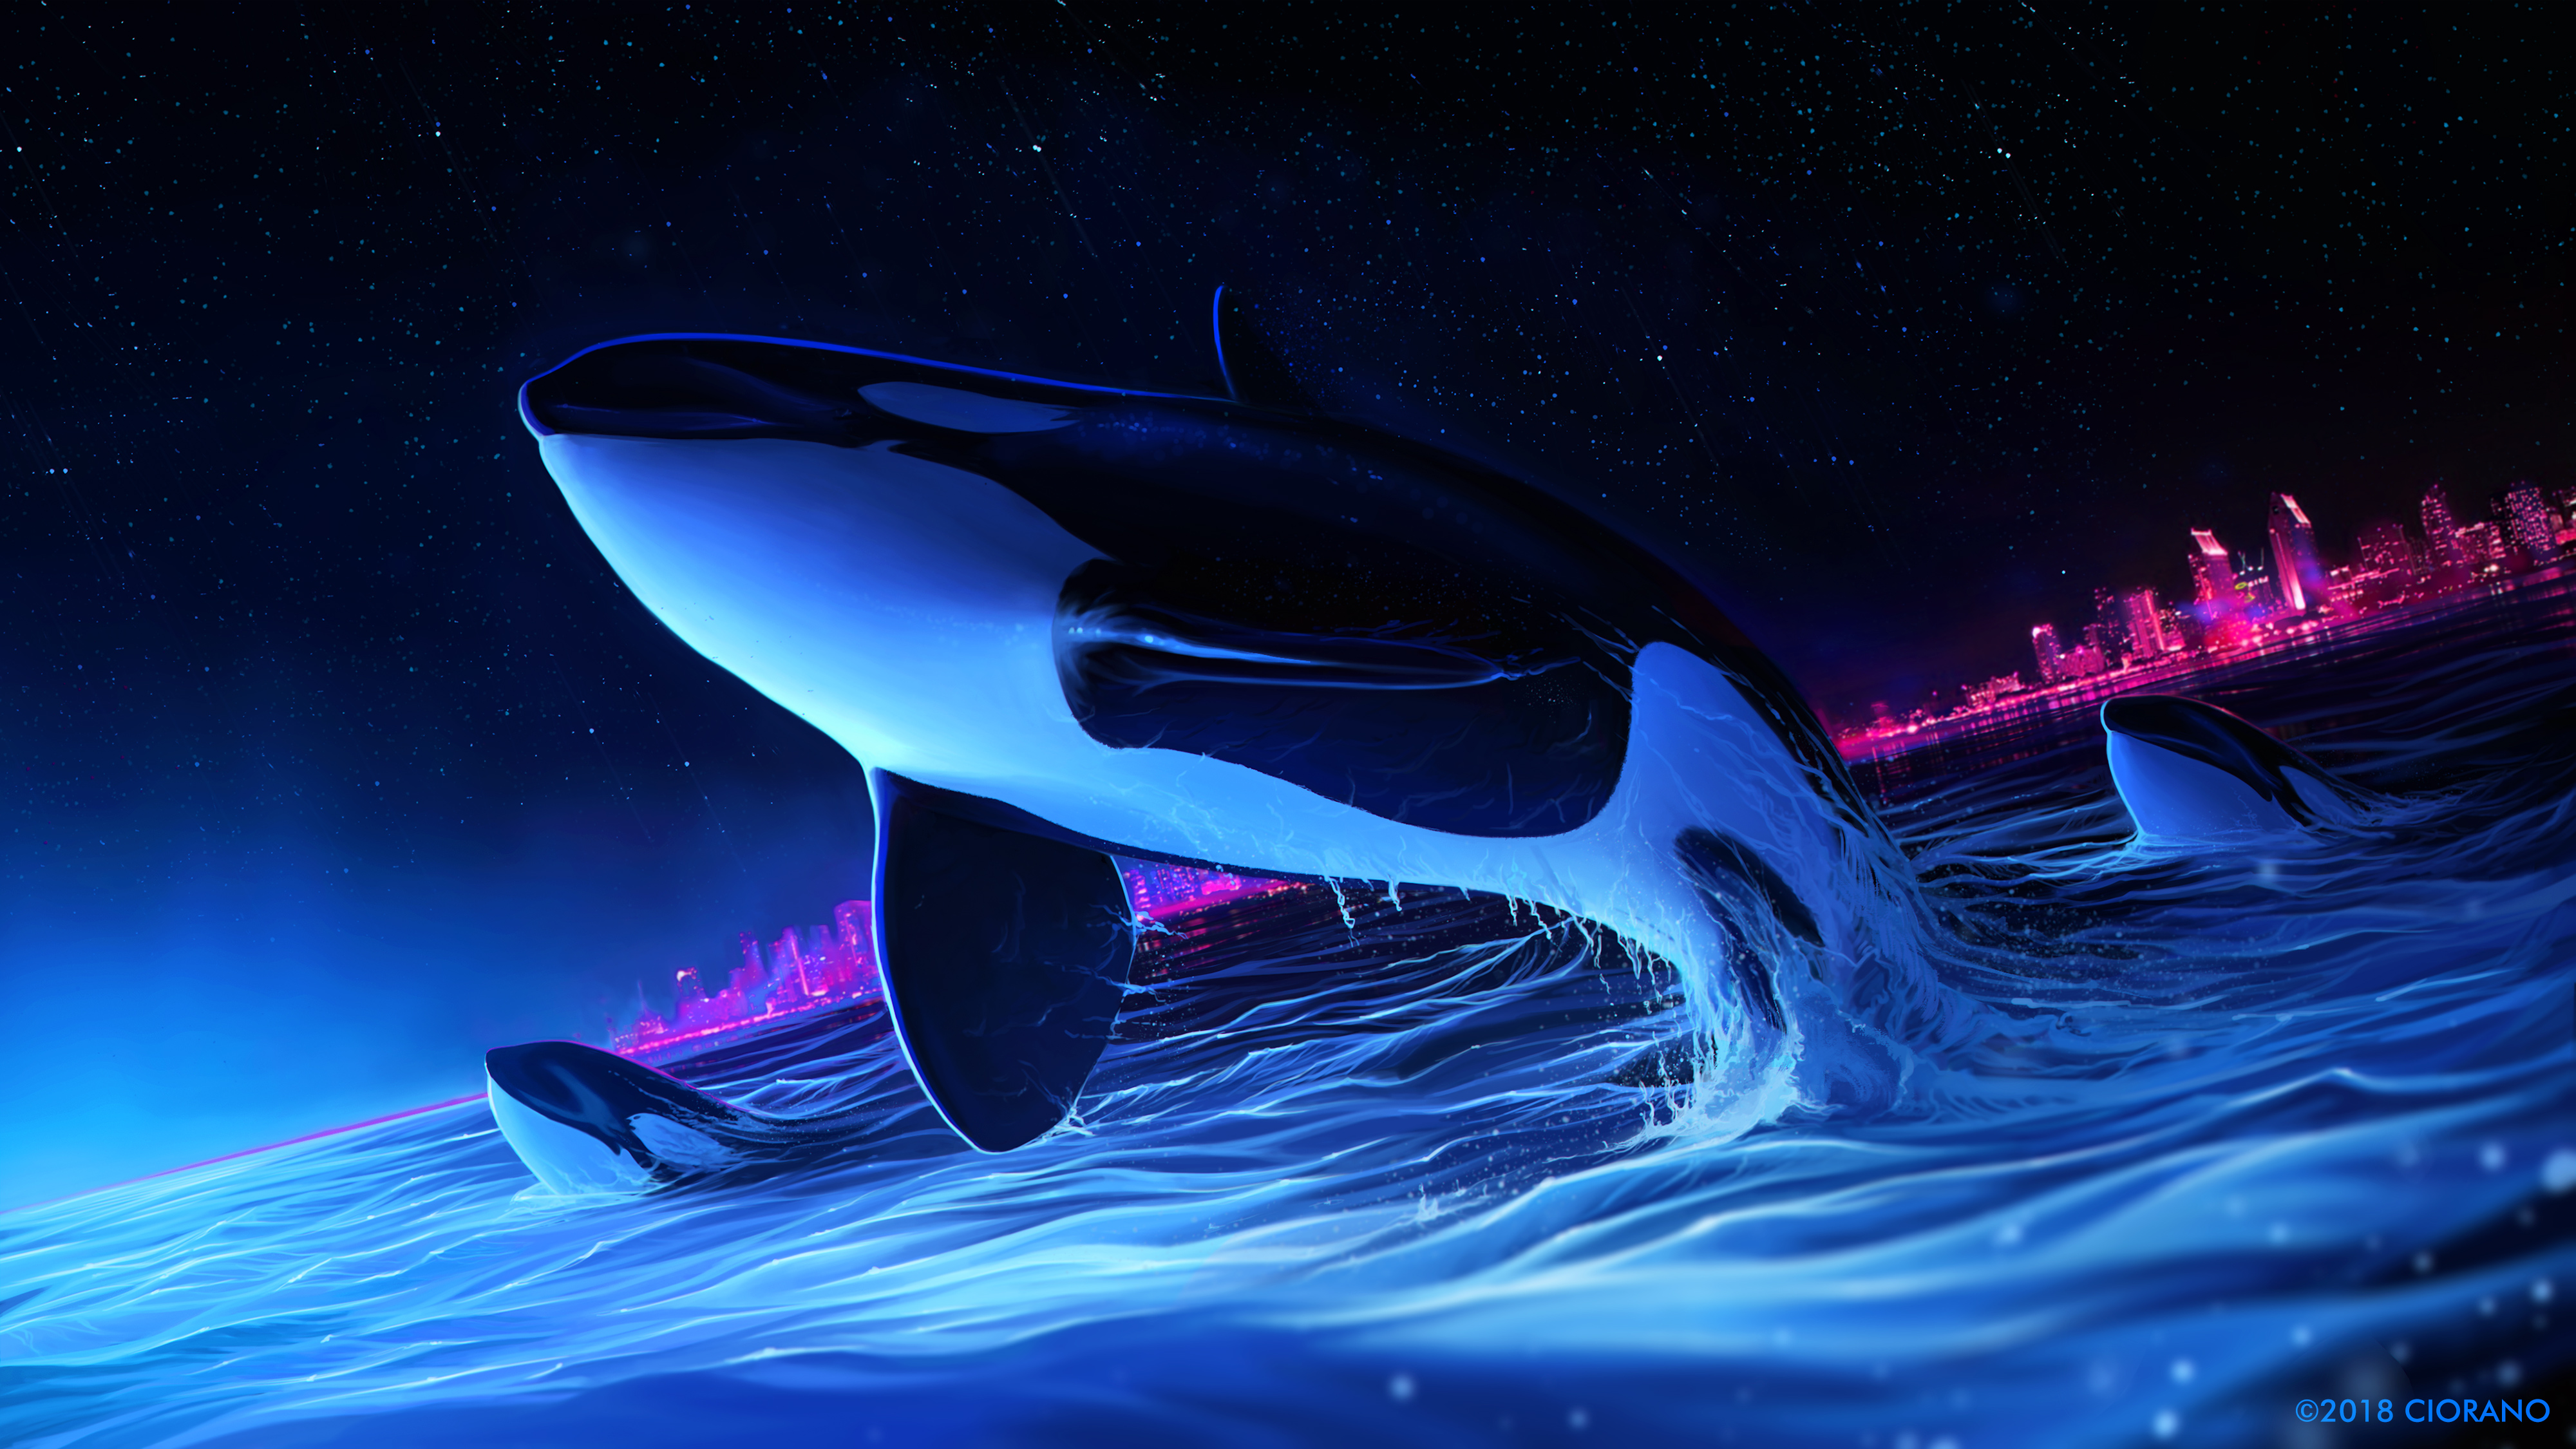 Dolphin Night Orca Whale Digital Art Hd Artist 4k